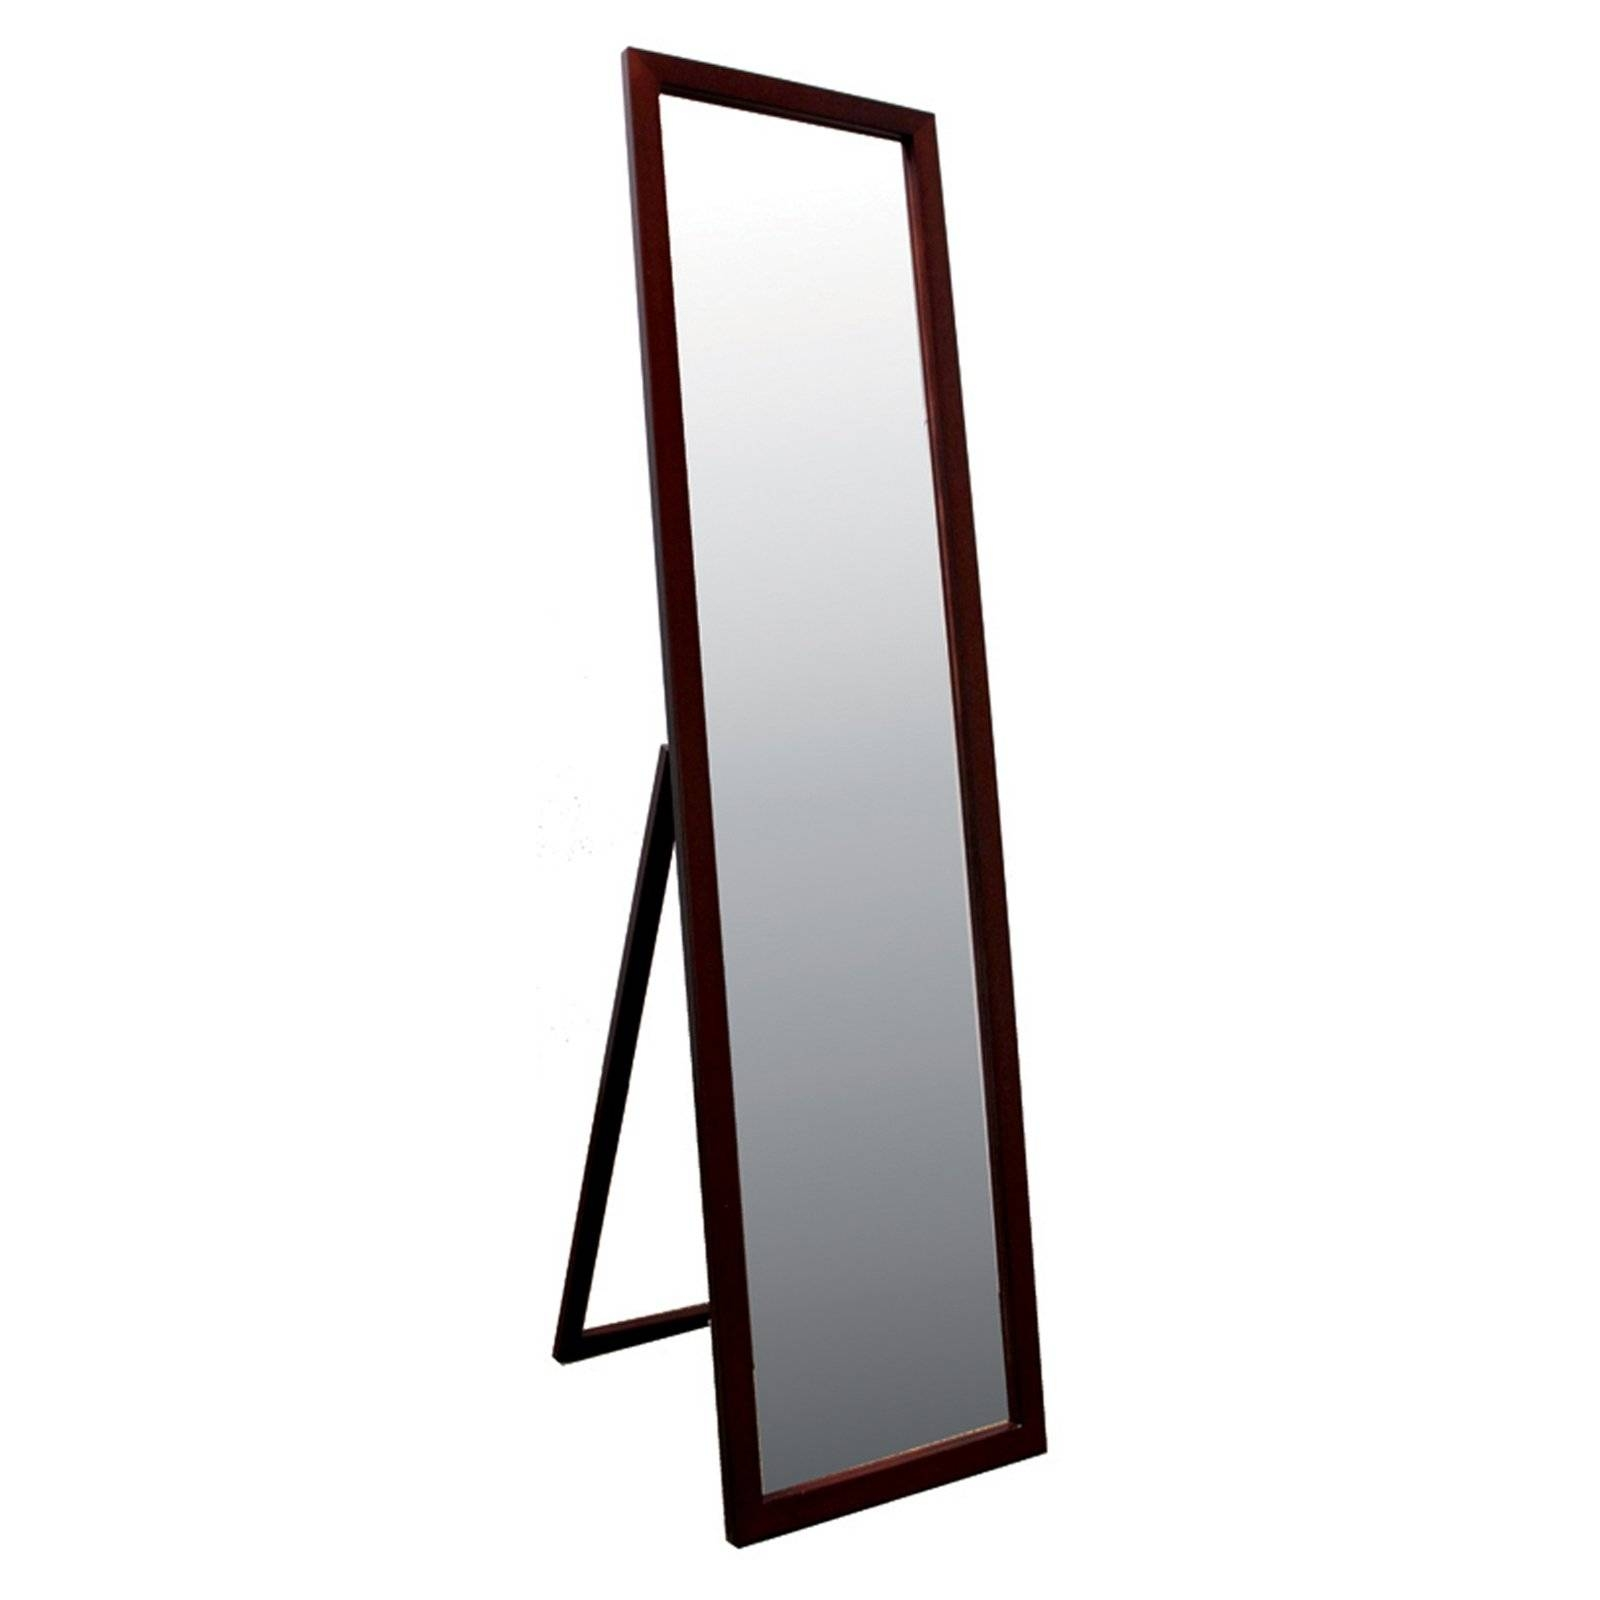 Full-Length Stand Alone Mirrors intended for Full Length Stand Alone Mirrors (Image 3 of 15)